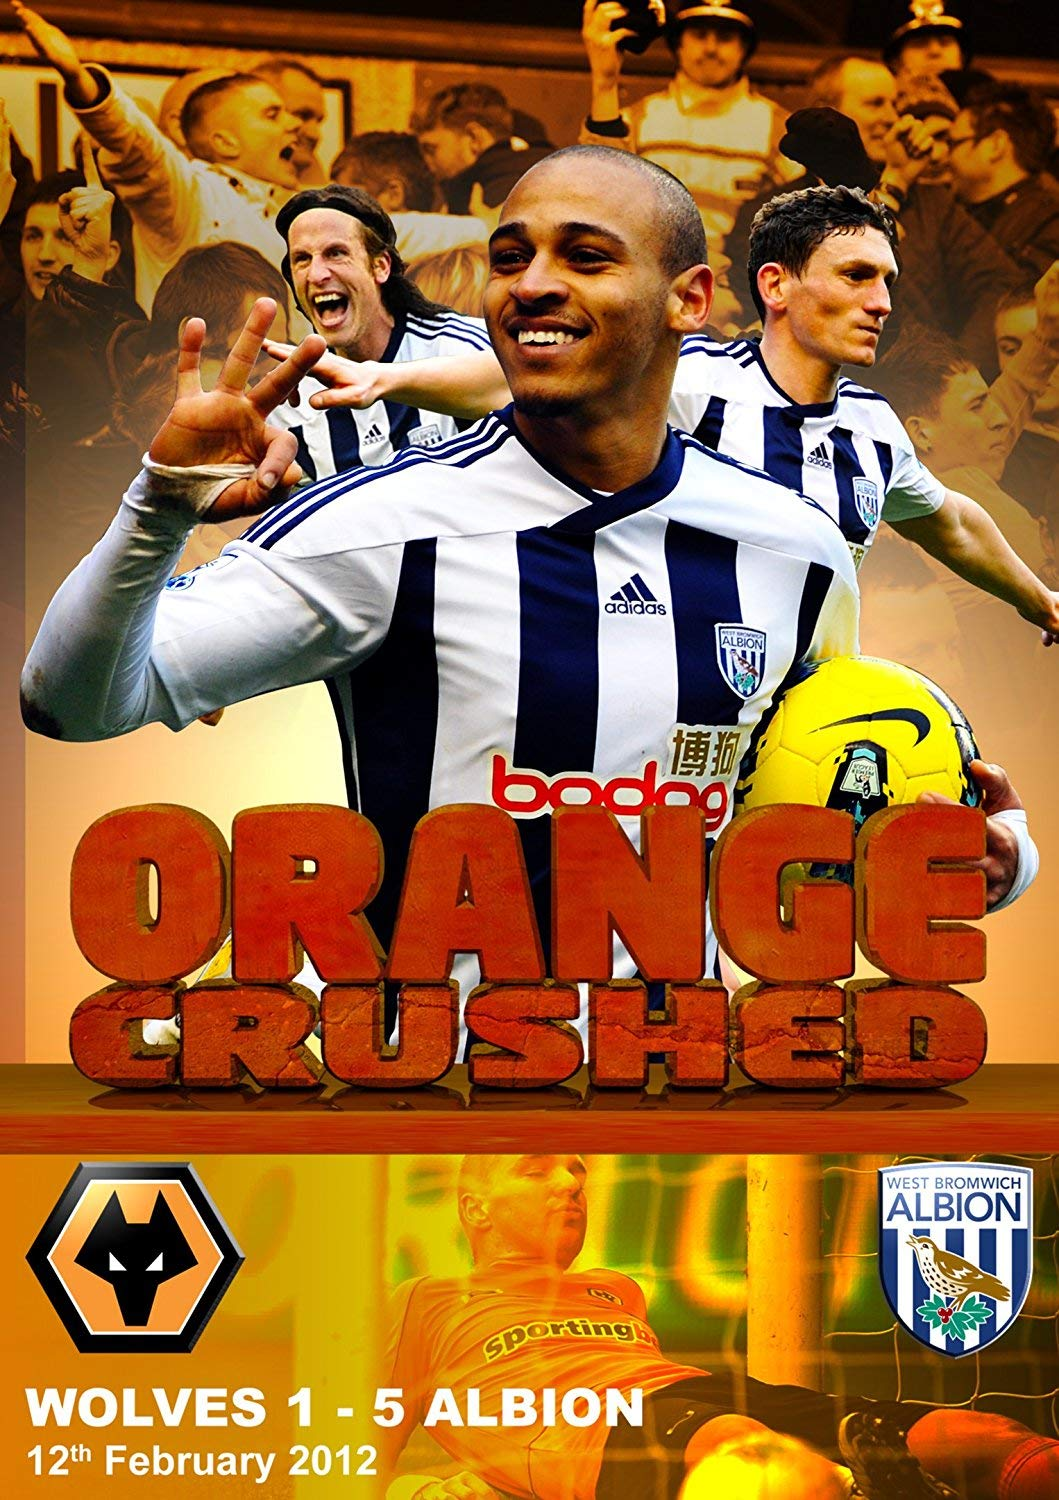 Amazon Com Wolves 1 West Bromwich Albion 5 12th February 2012 Orange Crushed Dvd Movies Tv